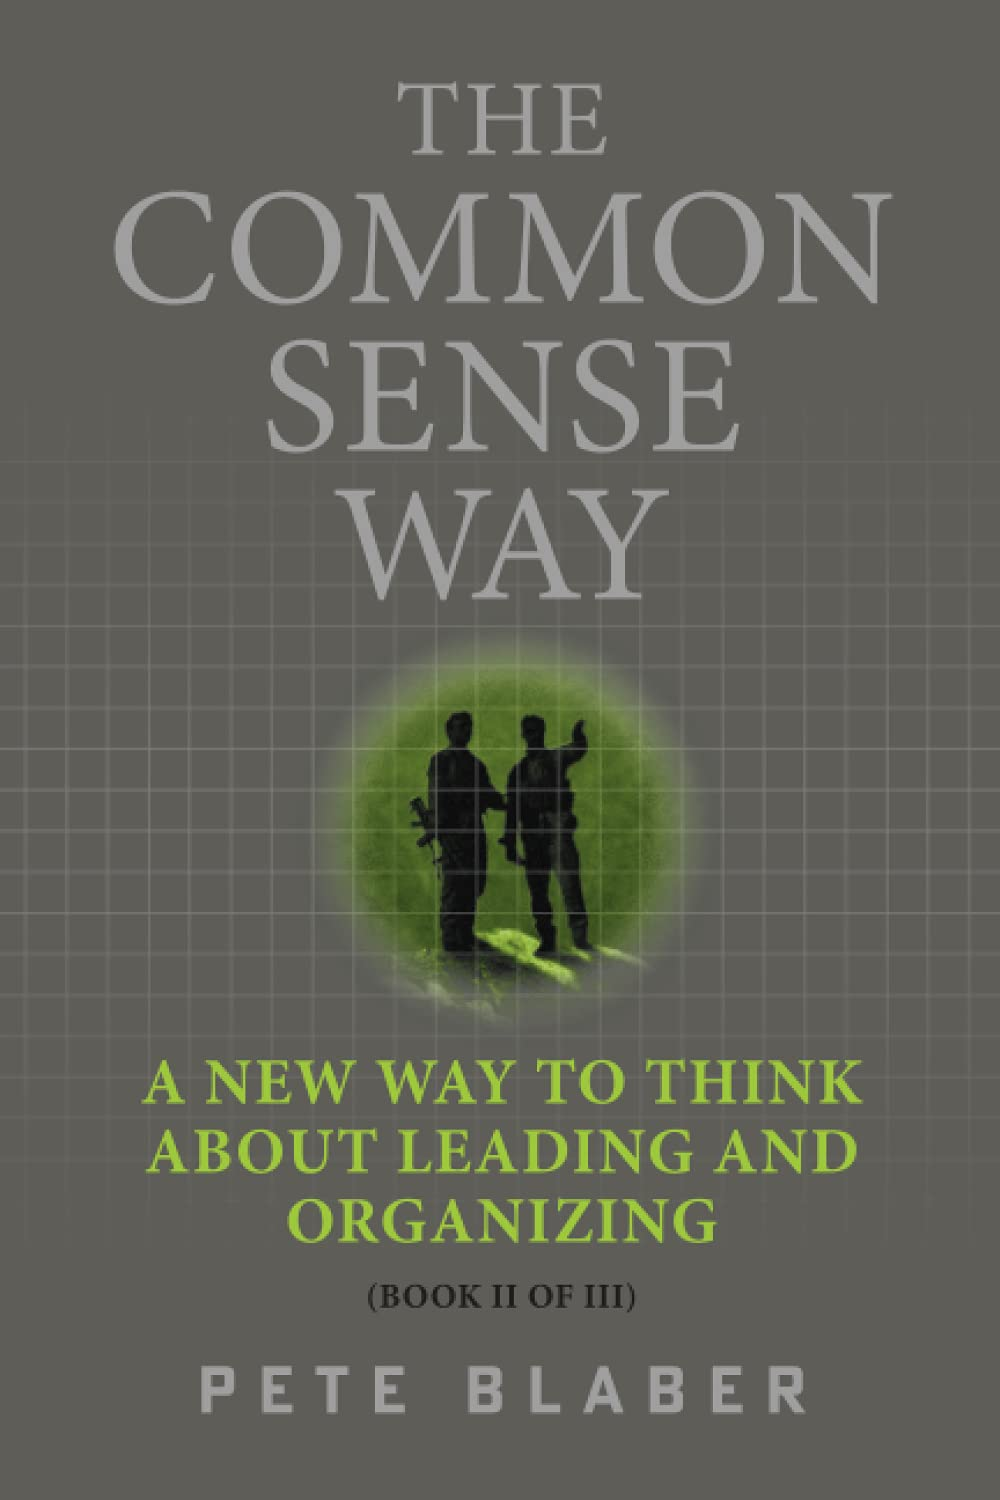 The Common Sense Way: A New Way to Think About Leading and Organizing (Leadership Books by Pete Blaber)